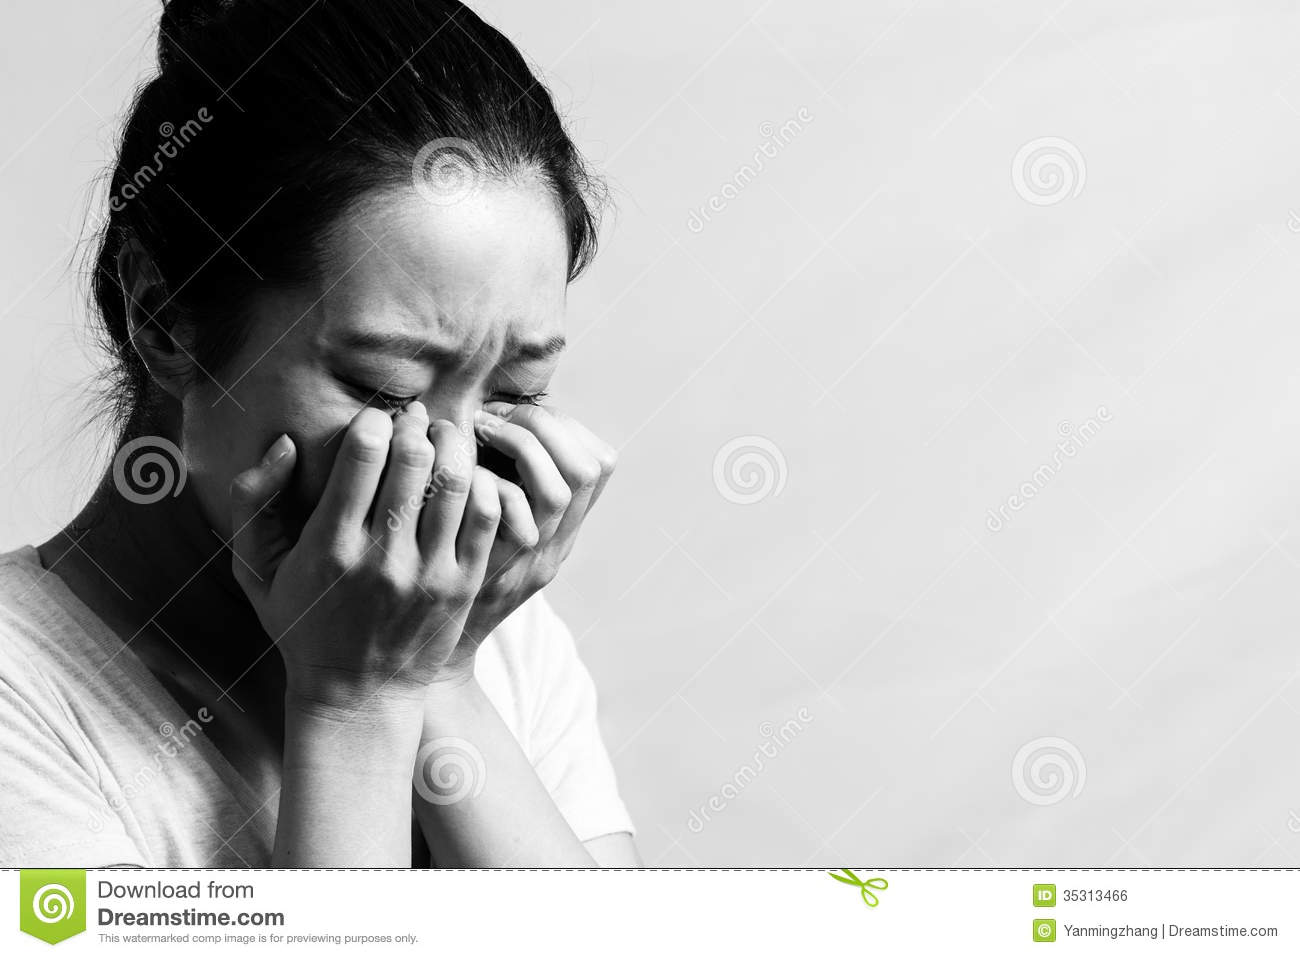 Woman crying black and white